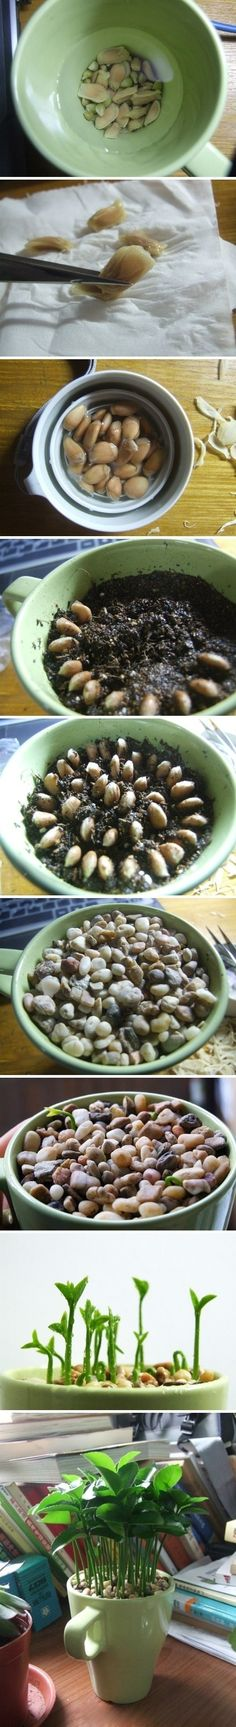 Plant lemon seeds - they make your house smell amazing. :)